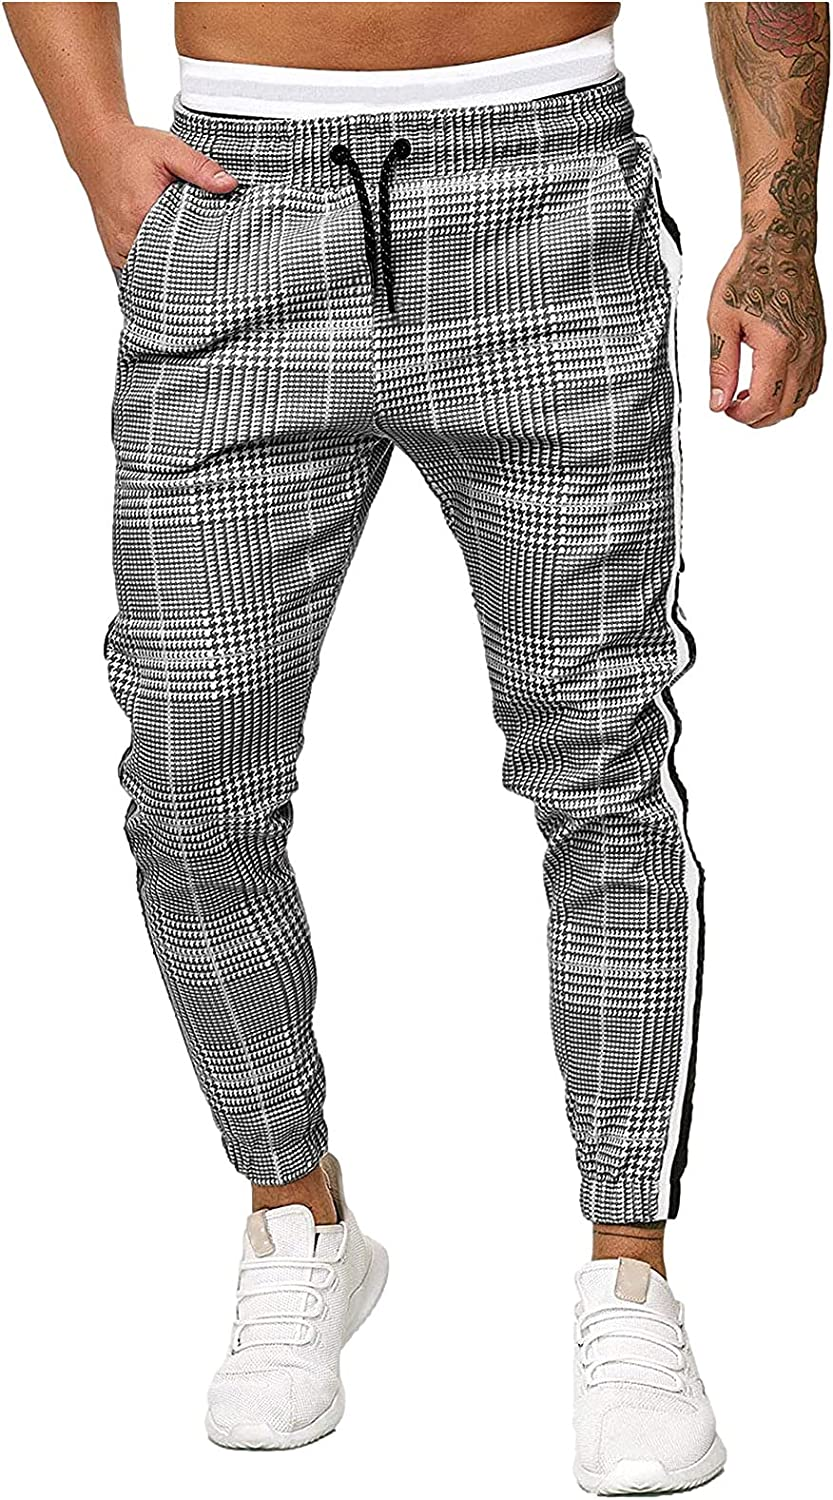 Slim Fit Pants for Men Skinny Stretch Casual Drawstring Plaid Pockets Trousers Comfortable Daily Joggers Sweatpant Leggings